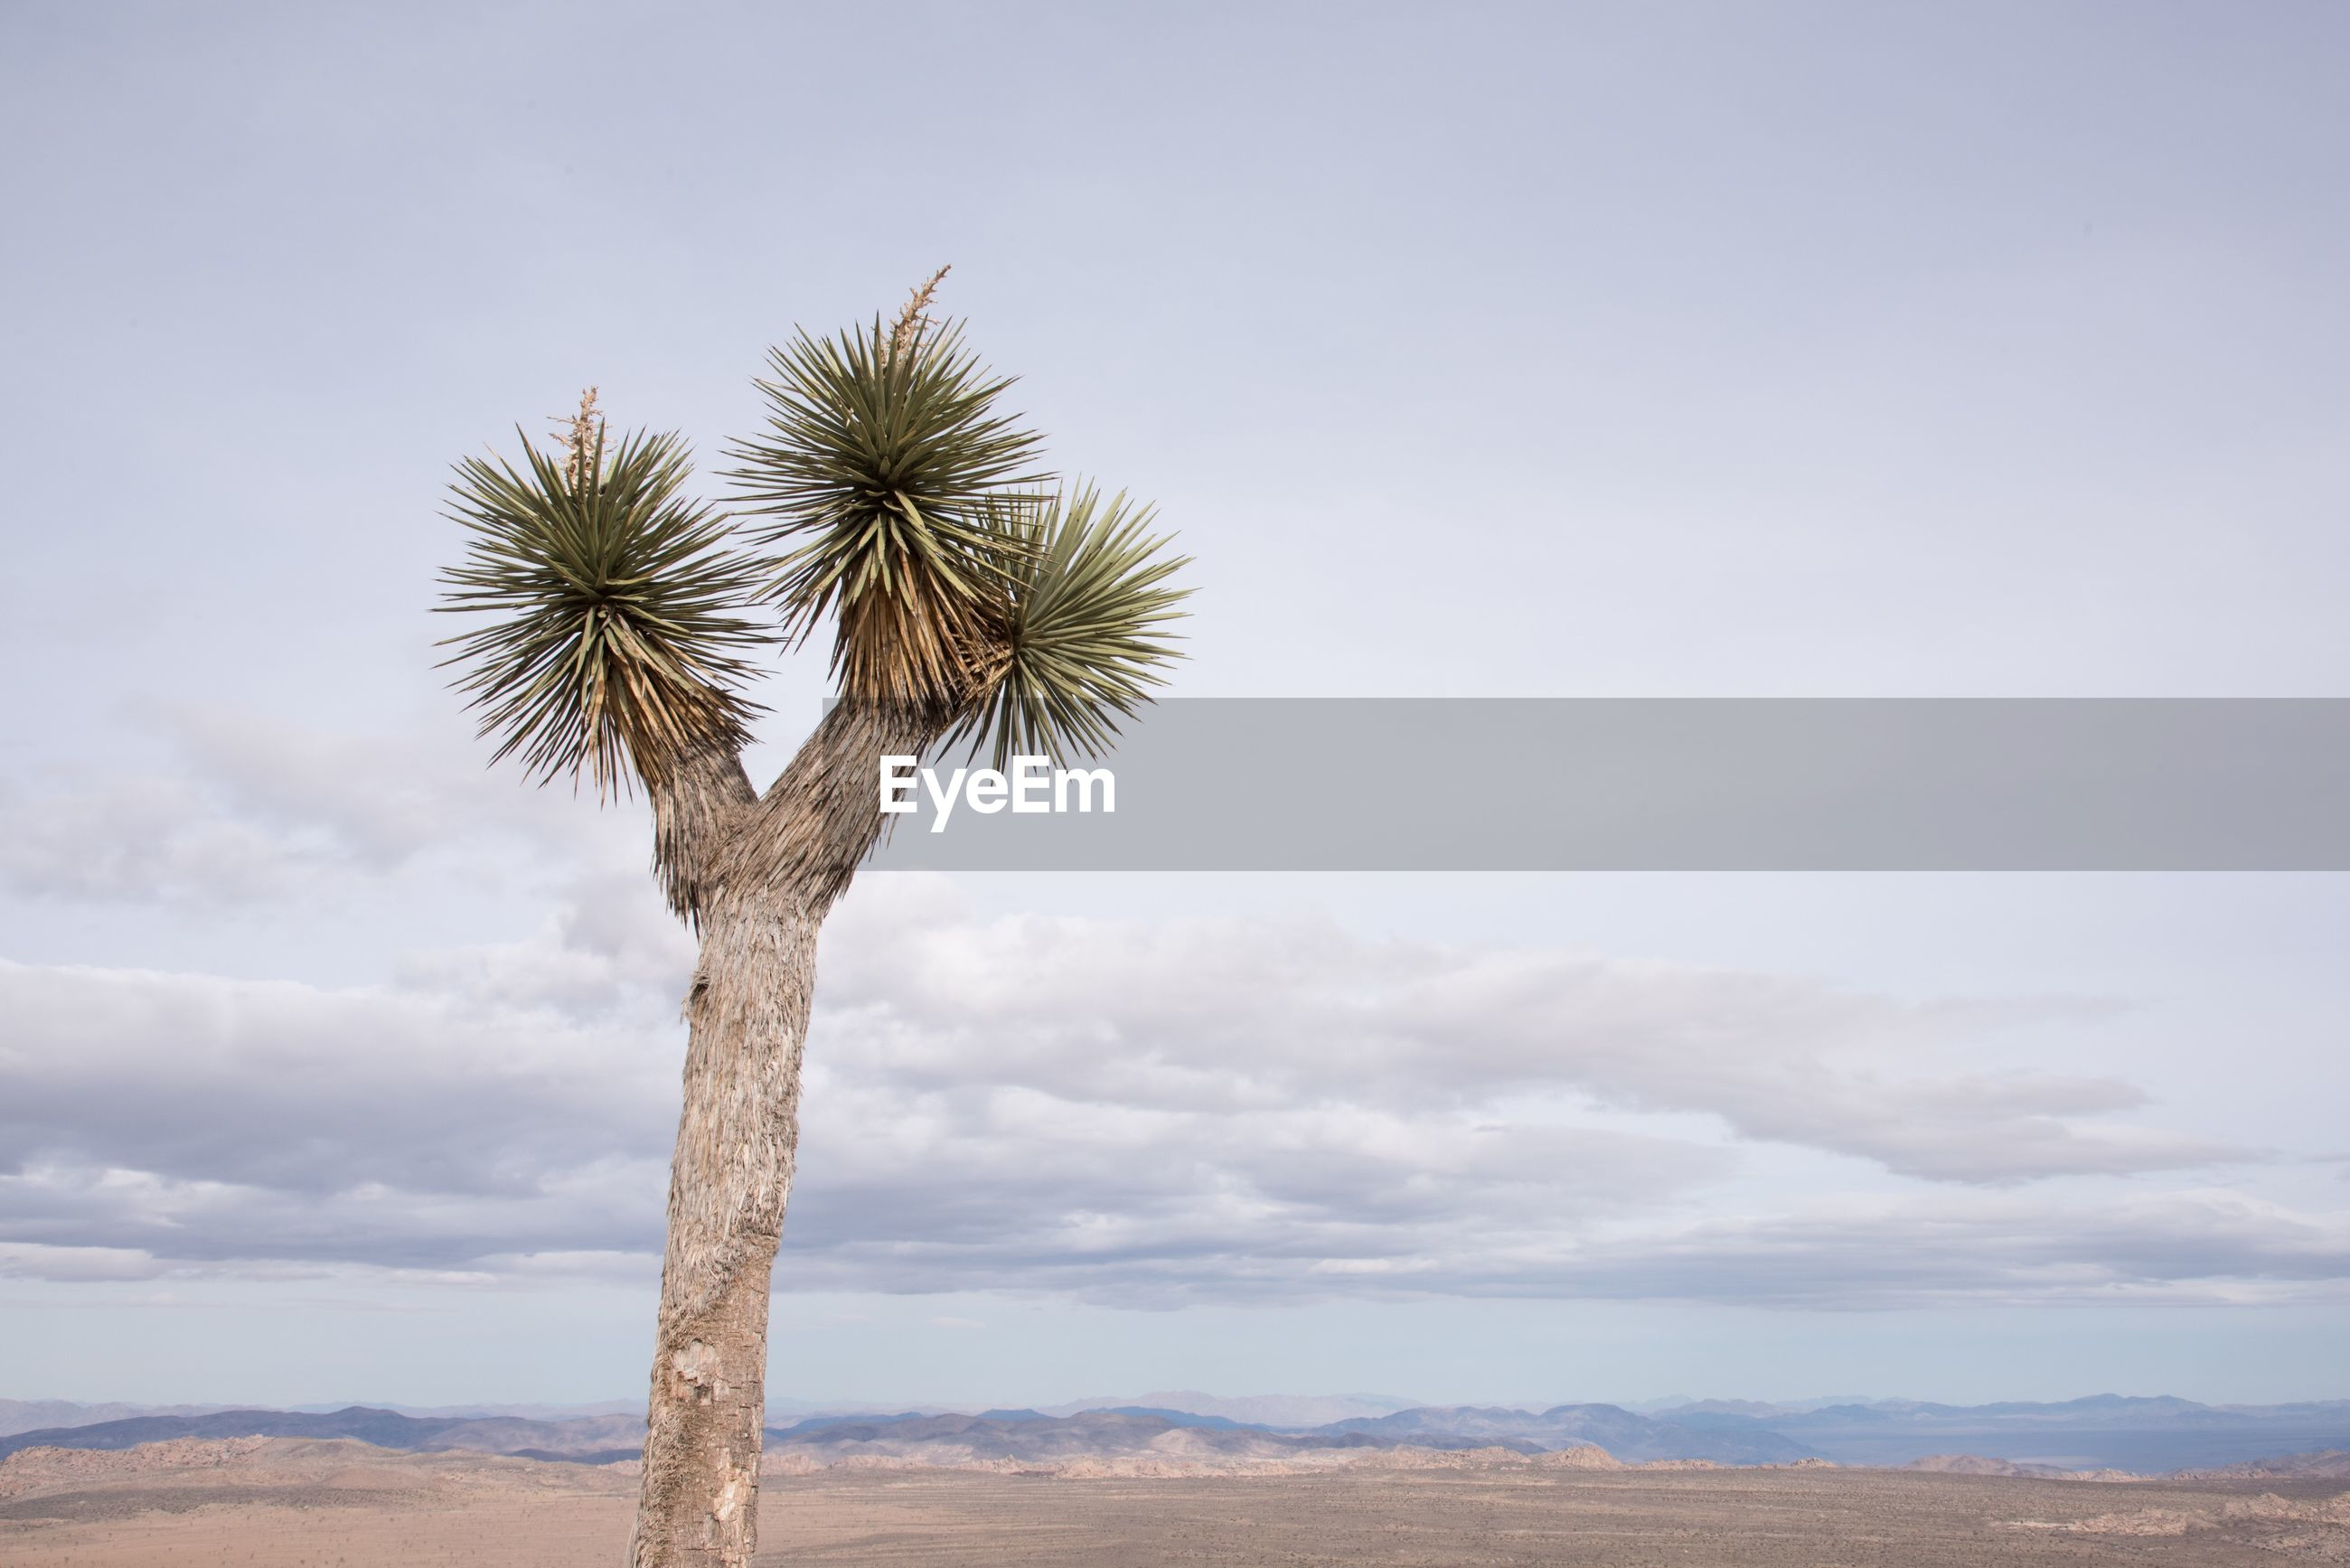 Low angle view of joshua tree growing against cloudy sky